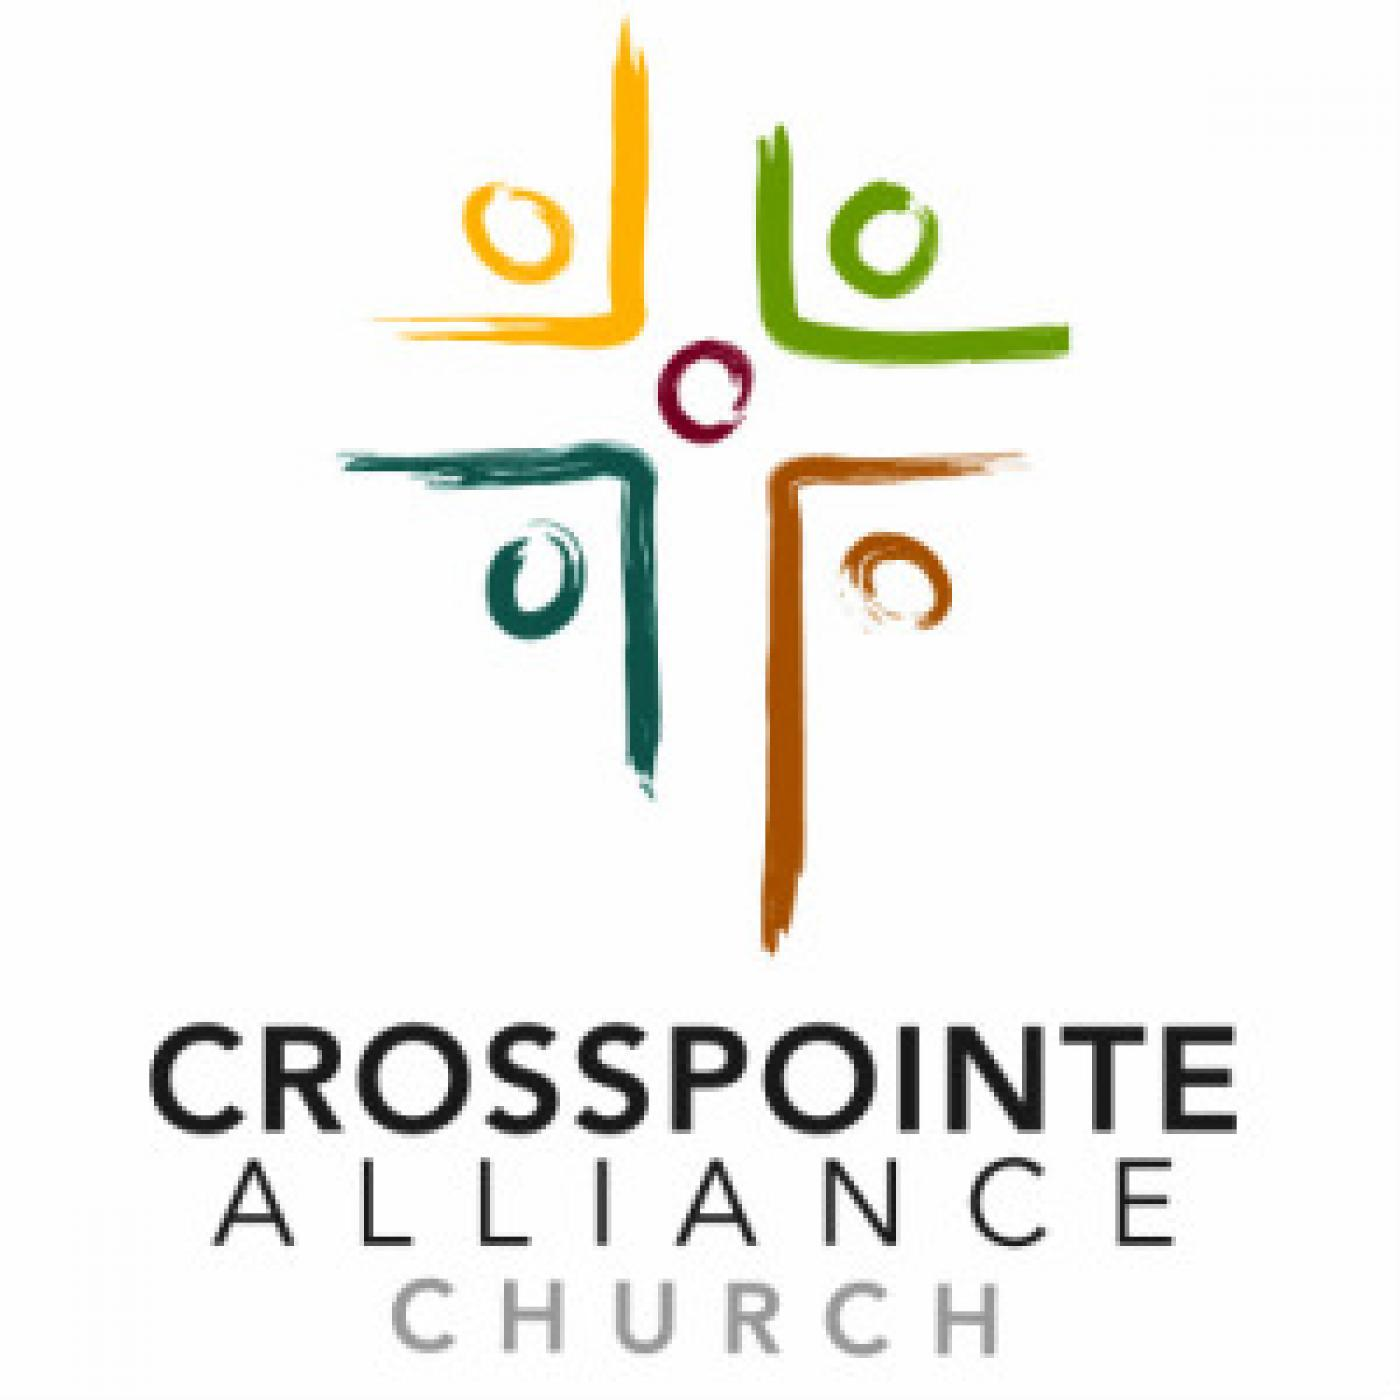 Crosspointe Alliance Church